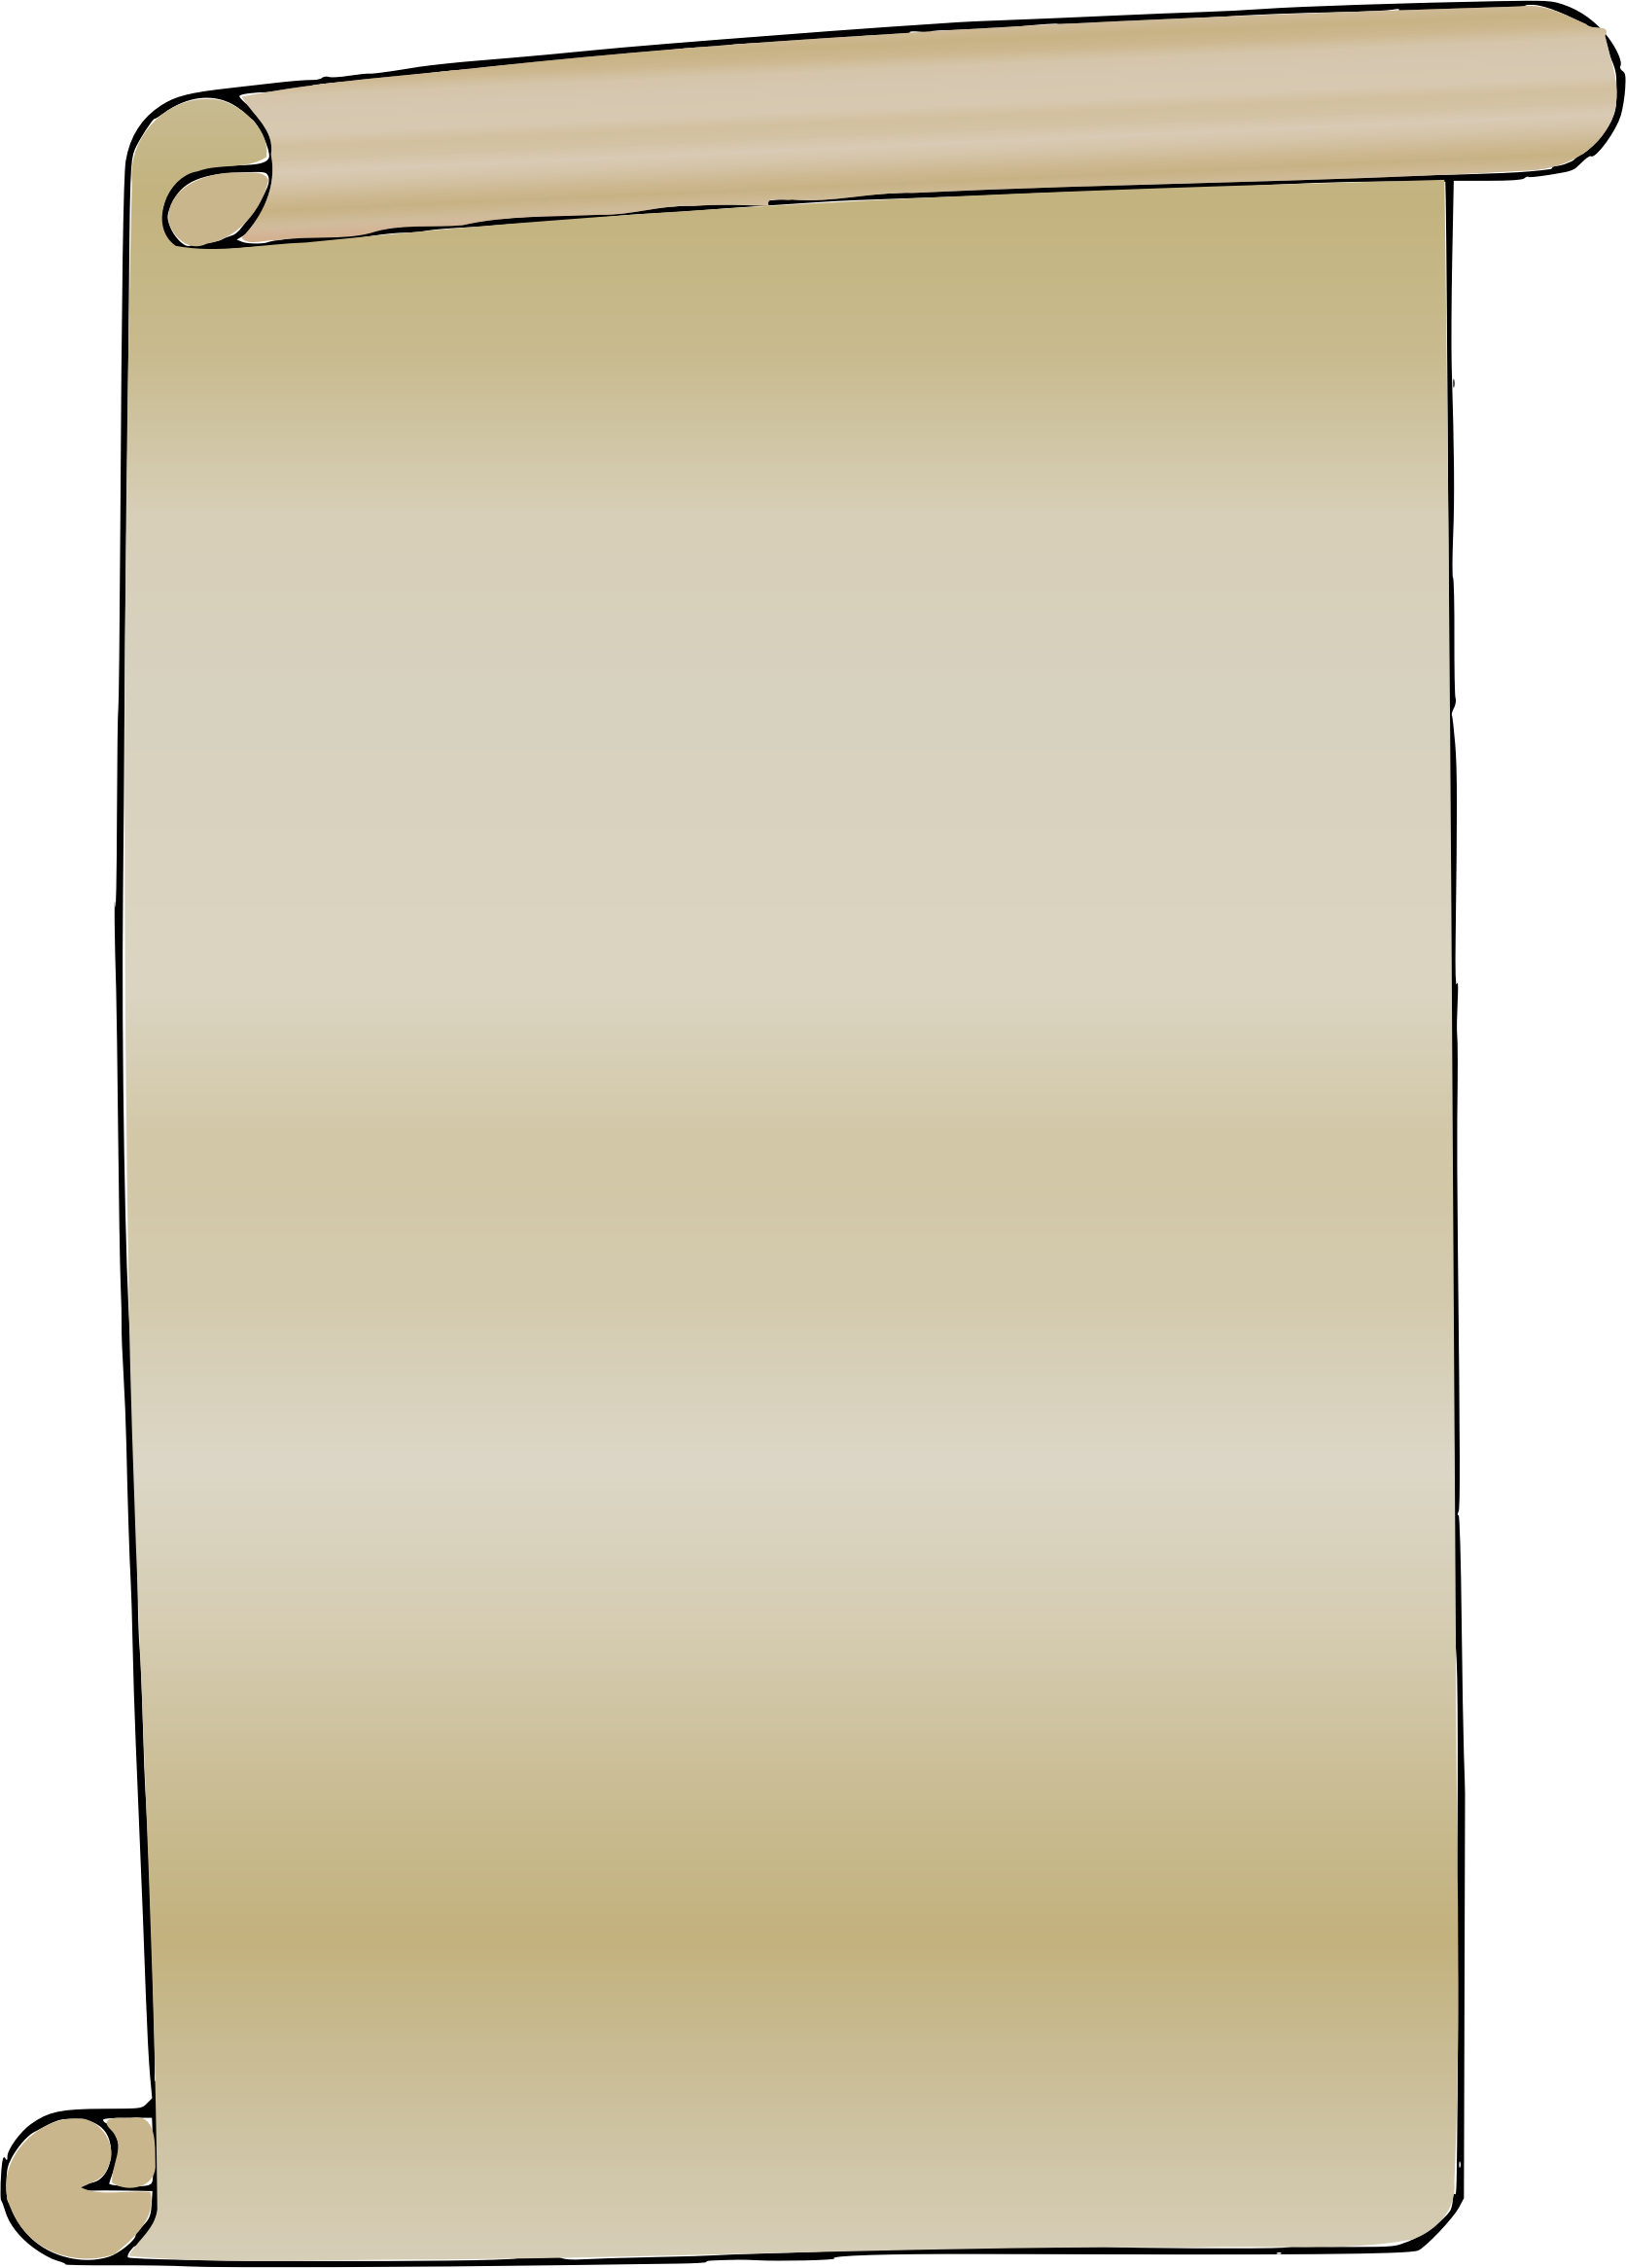 Paper scroll png. Clipart image id photo